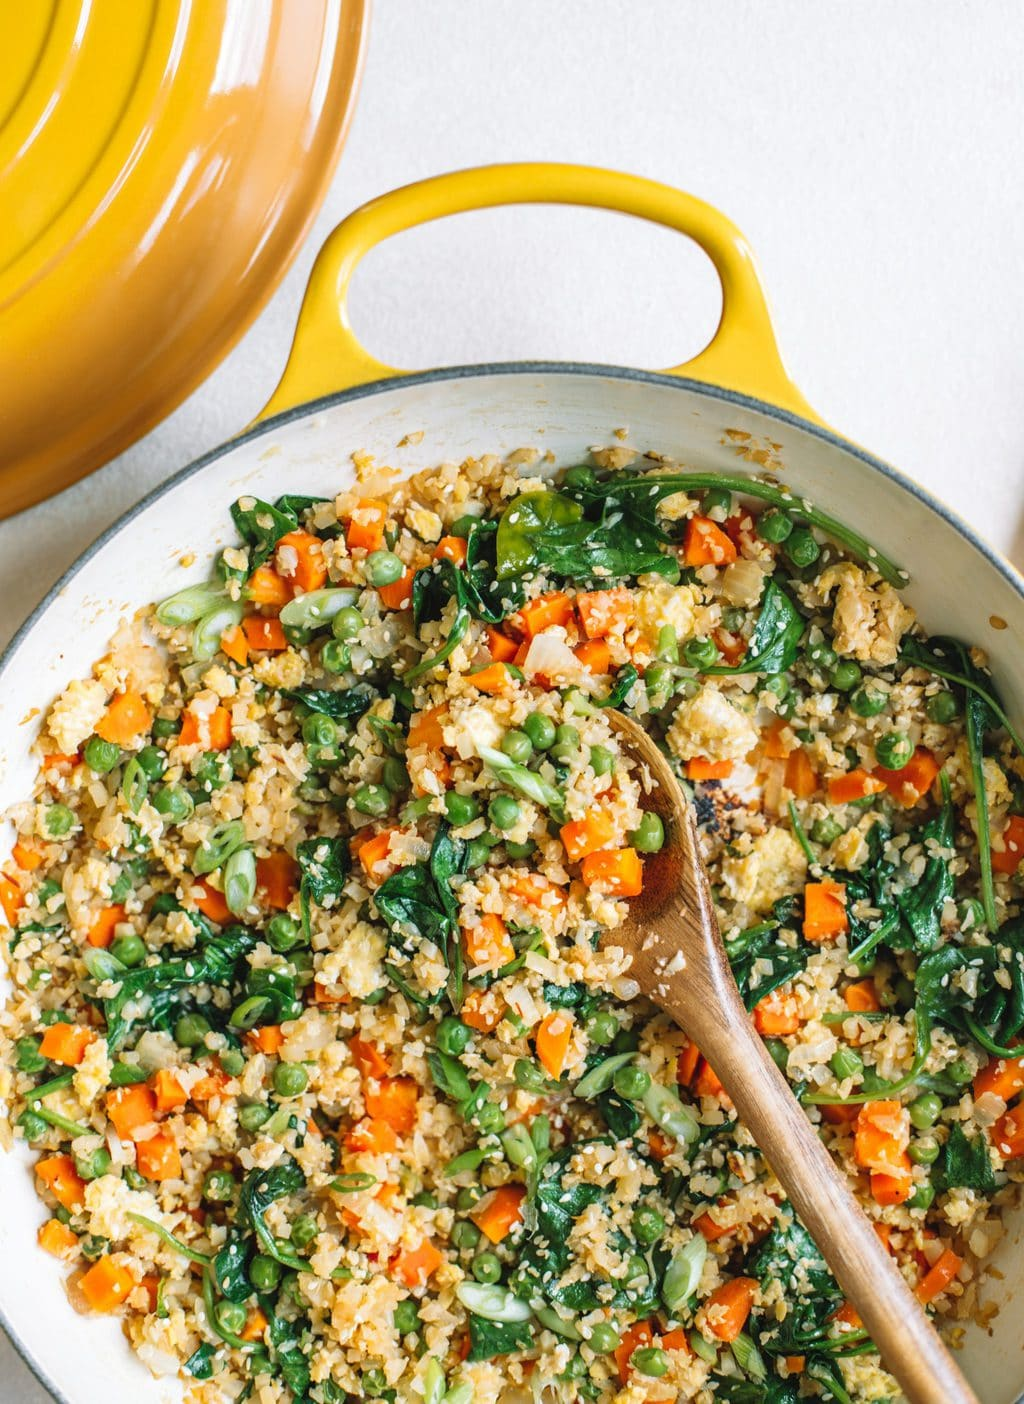 Cauliflower fried rice in a yellow skillet with a wooden spoon scooping a serving out.